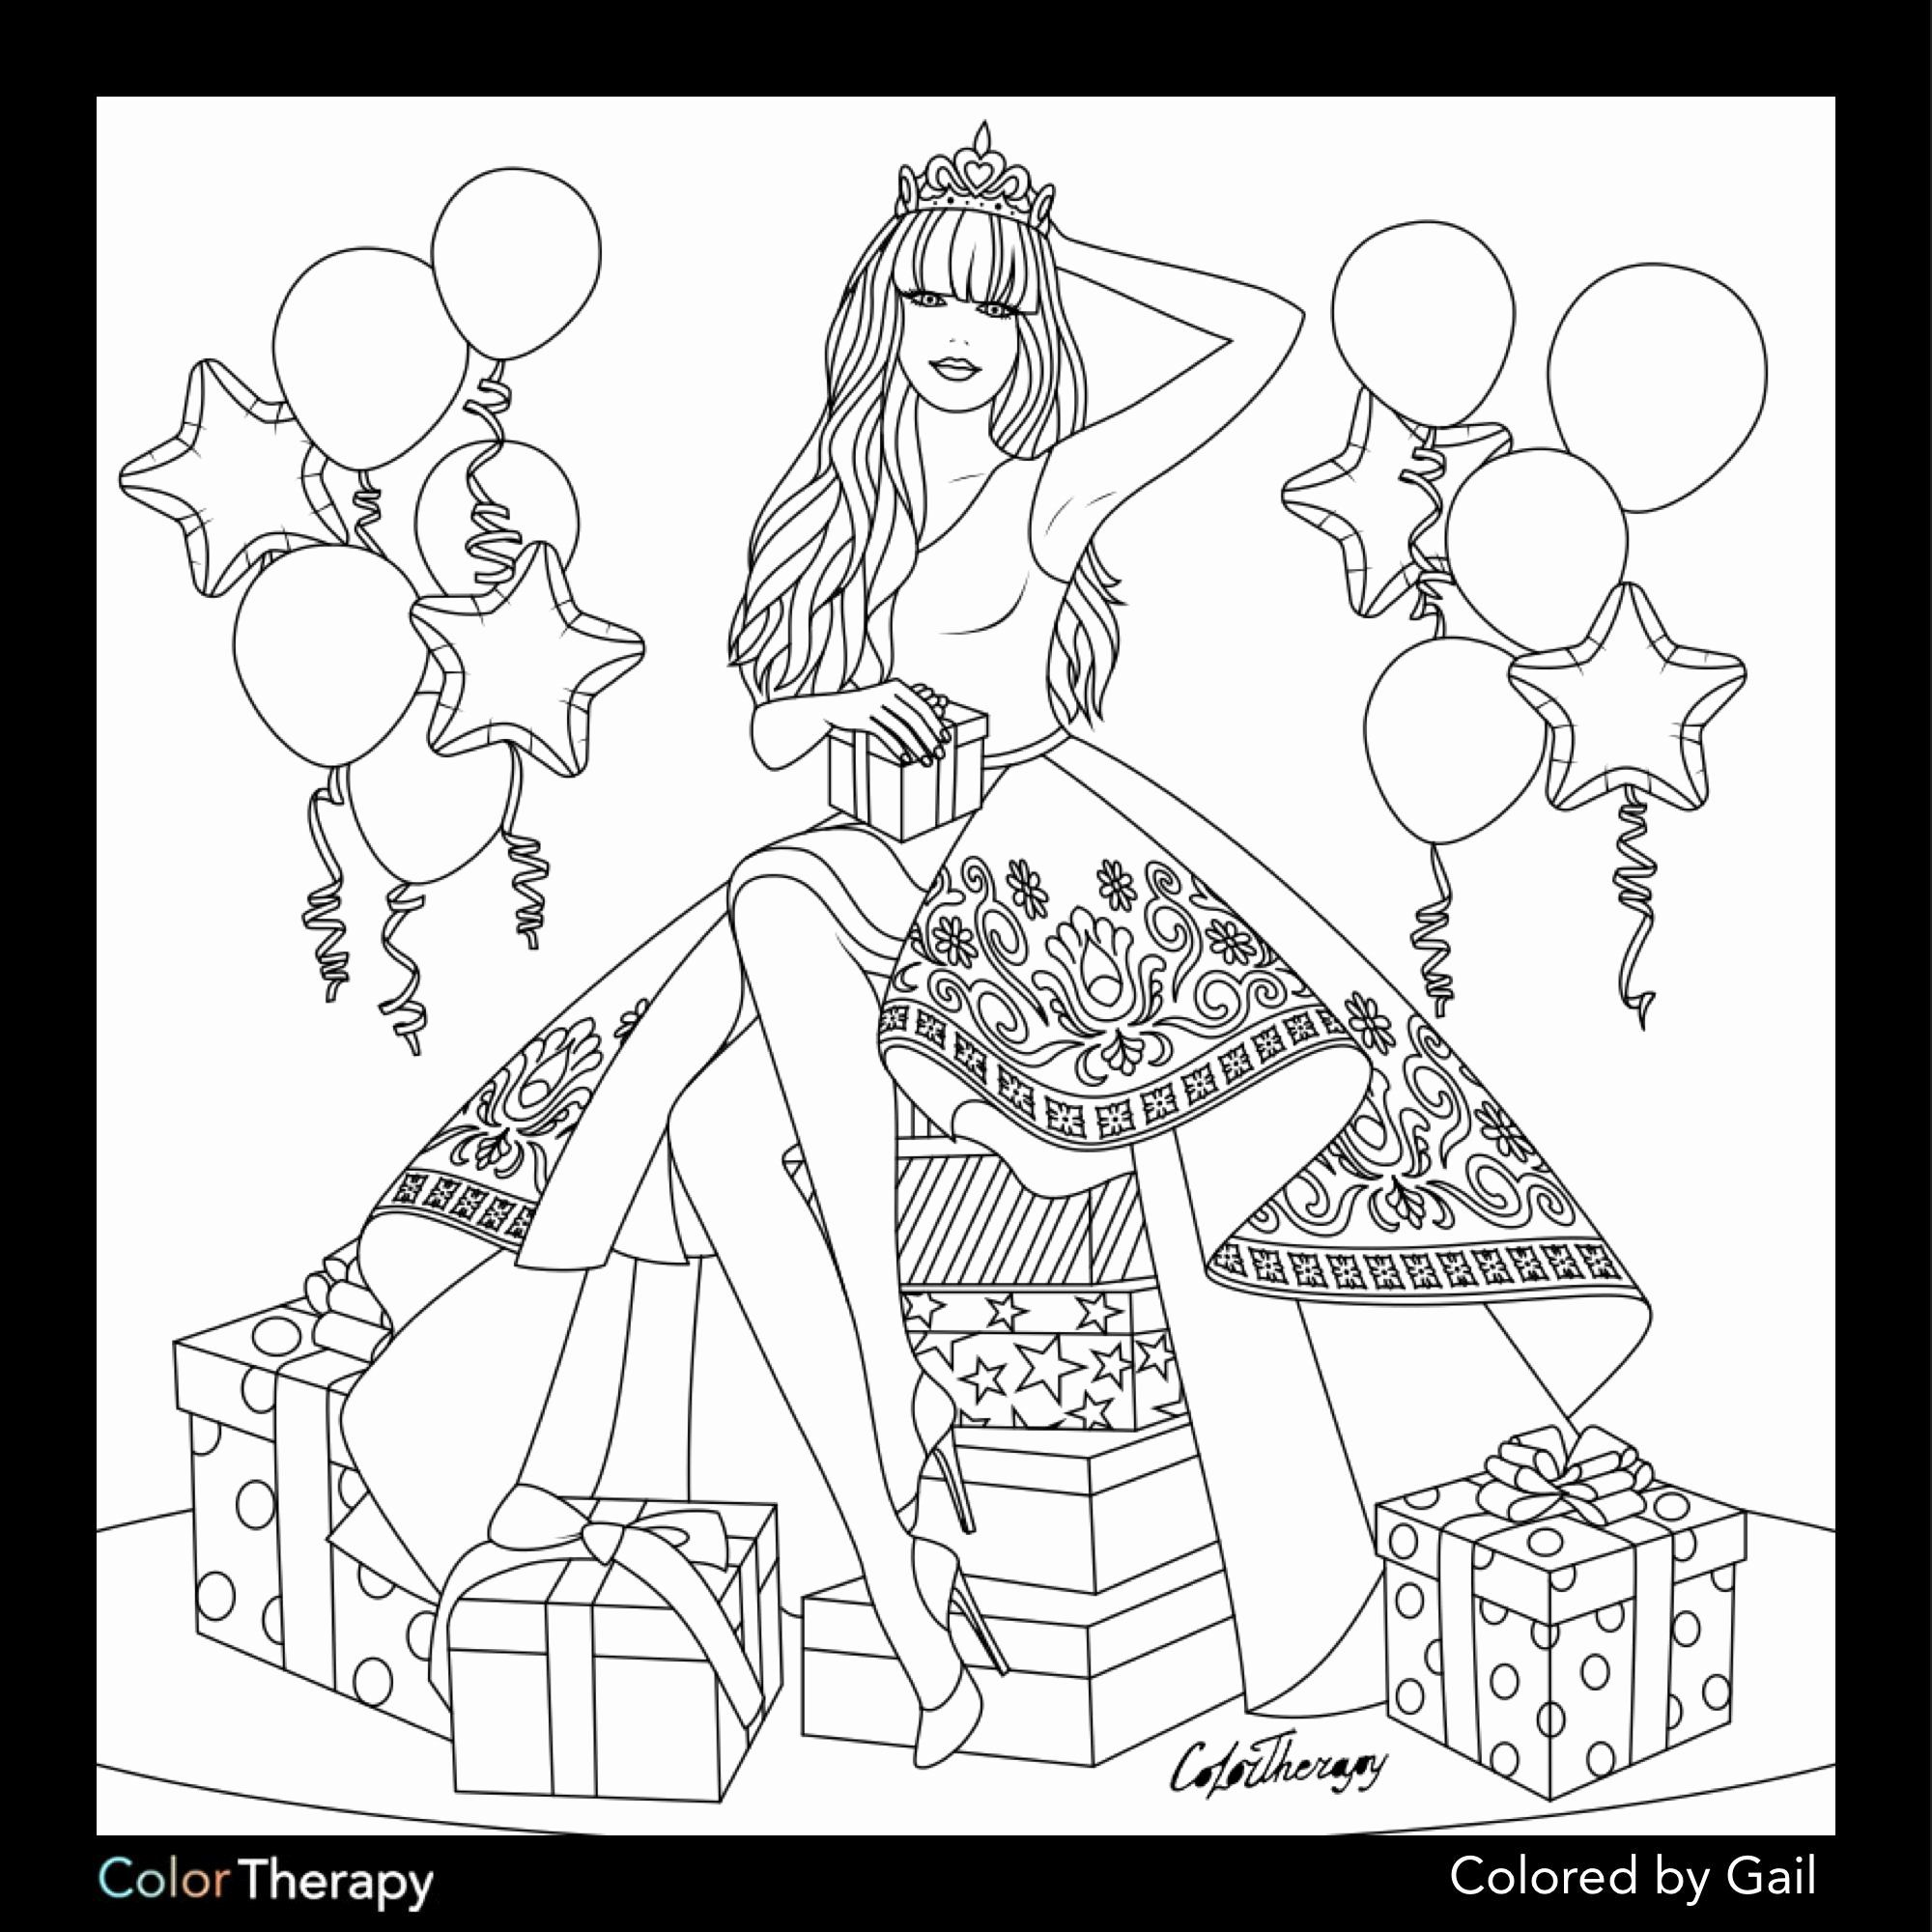 Color Therapy Coloring Book Unique I Colored This Myself Using Color Therapy App It Was So Coloring Books Coloring Pages Coloring Book Art